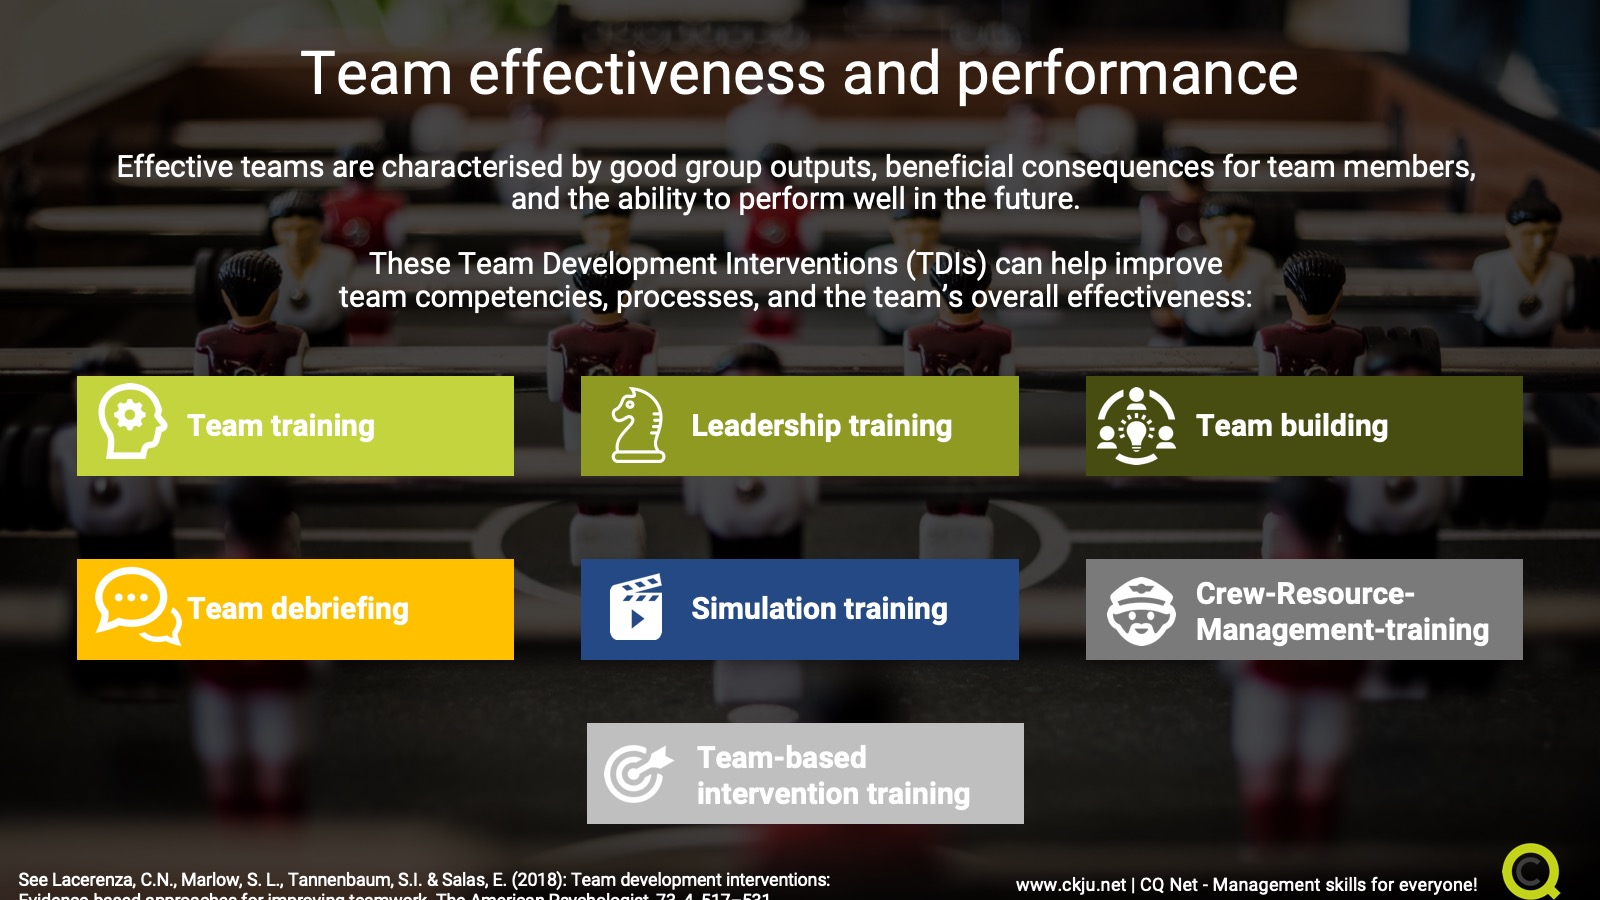 Improving team effectiveness and team performance with team development interventions